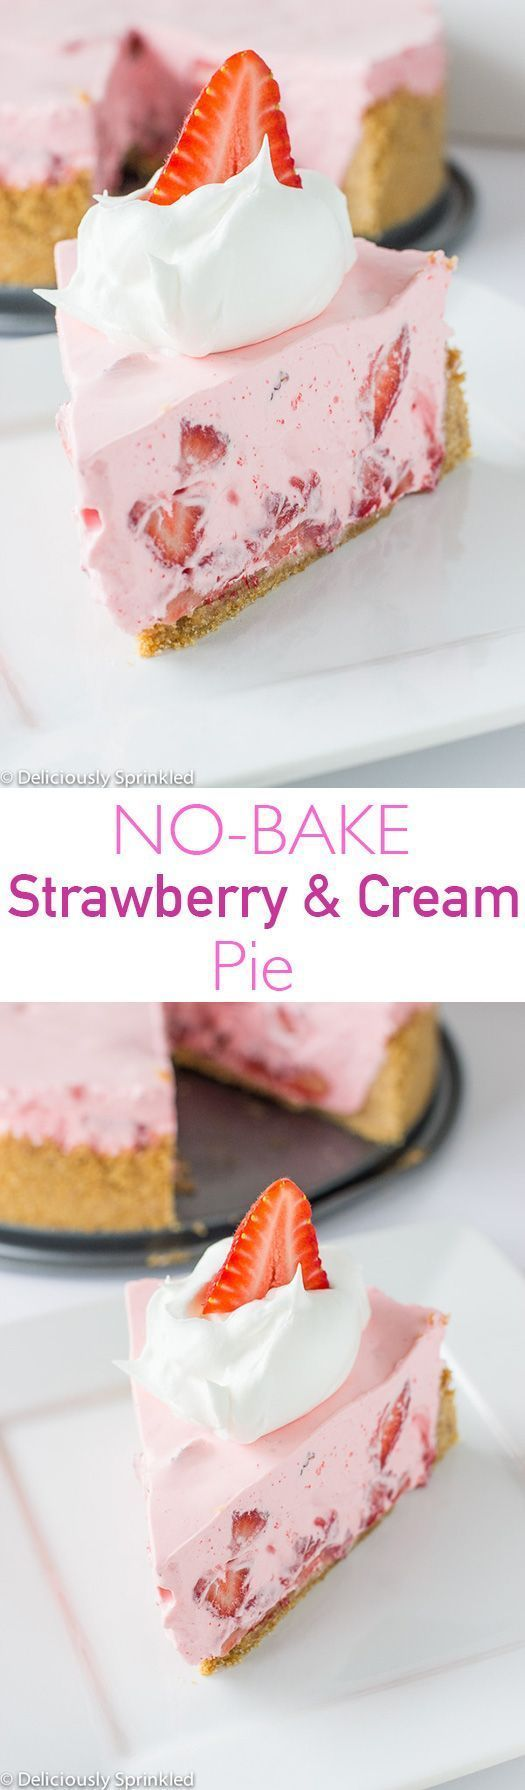 No-Bake Strawberry and Cream Pie - perfect summer dessert!